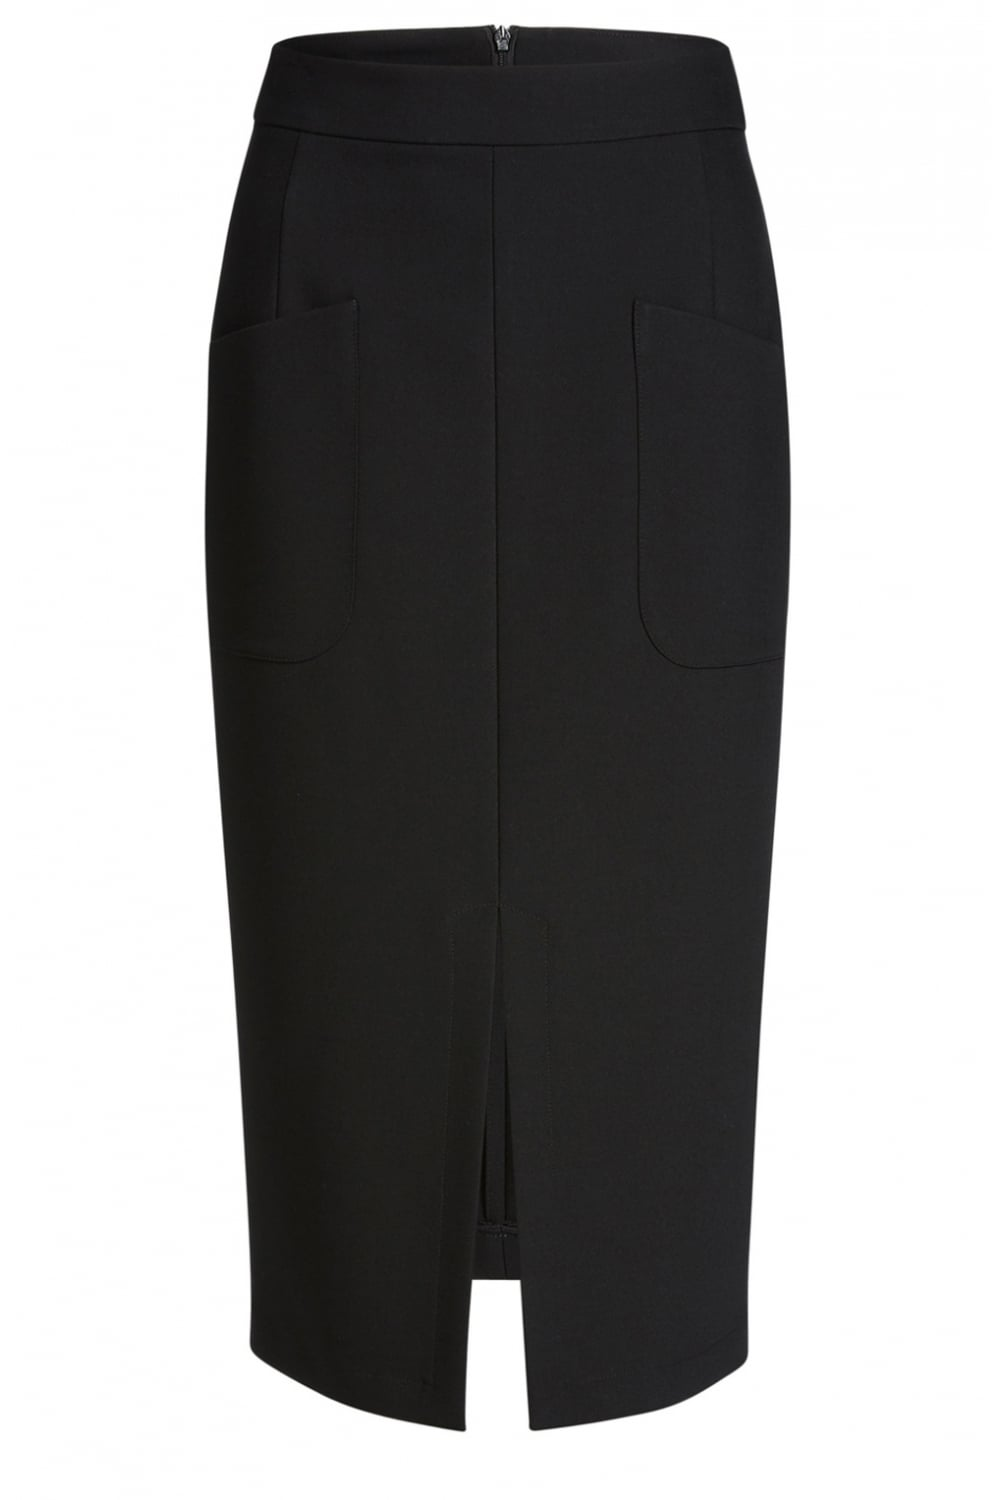 Oui Black Fitted Midi Skirt - Oui from Shirt Sleeves UK